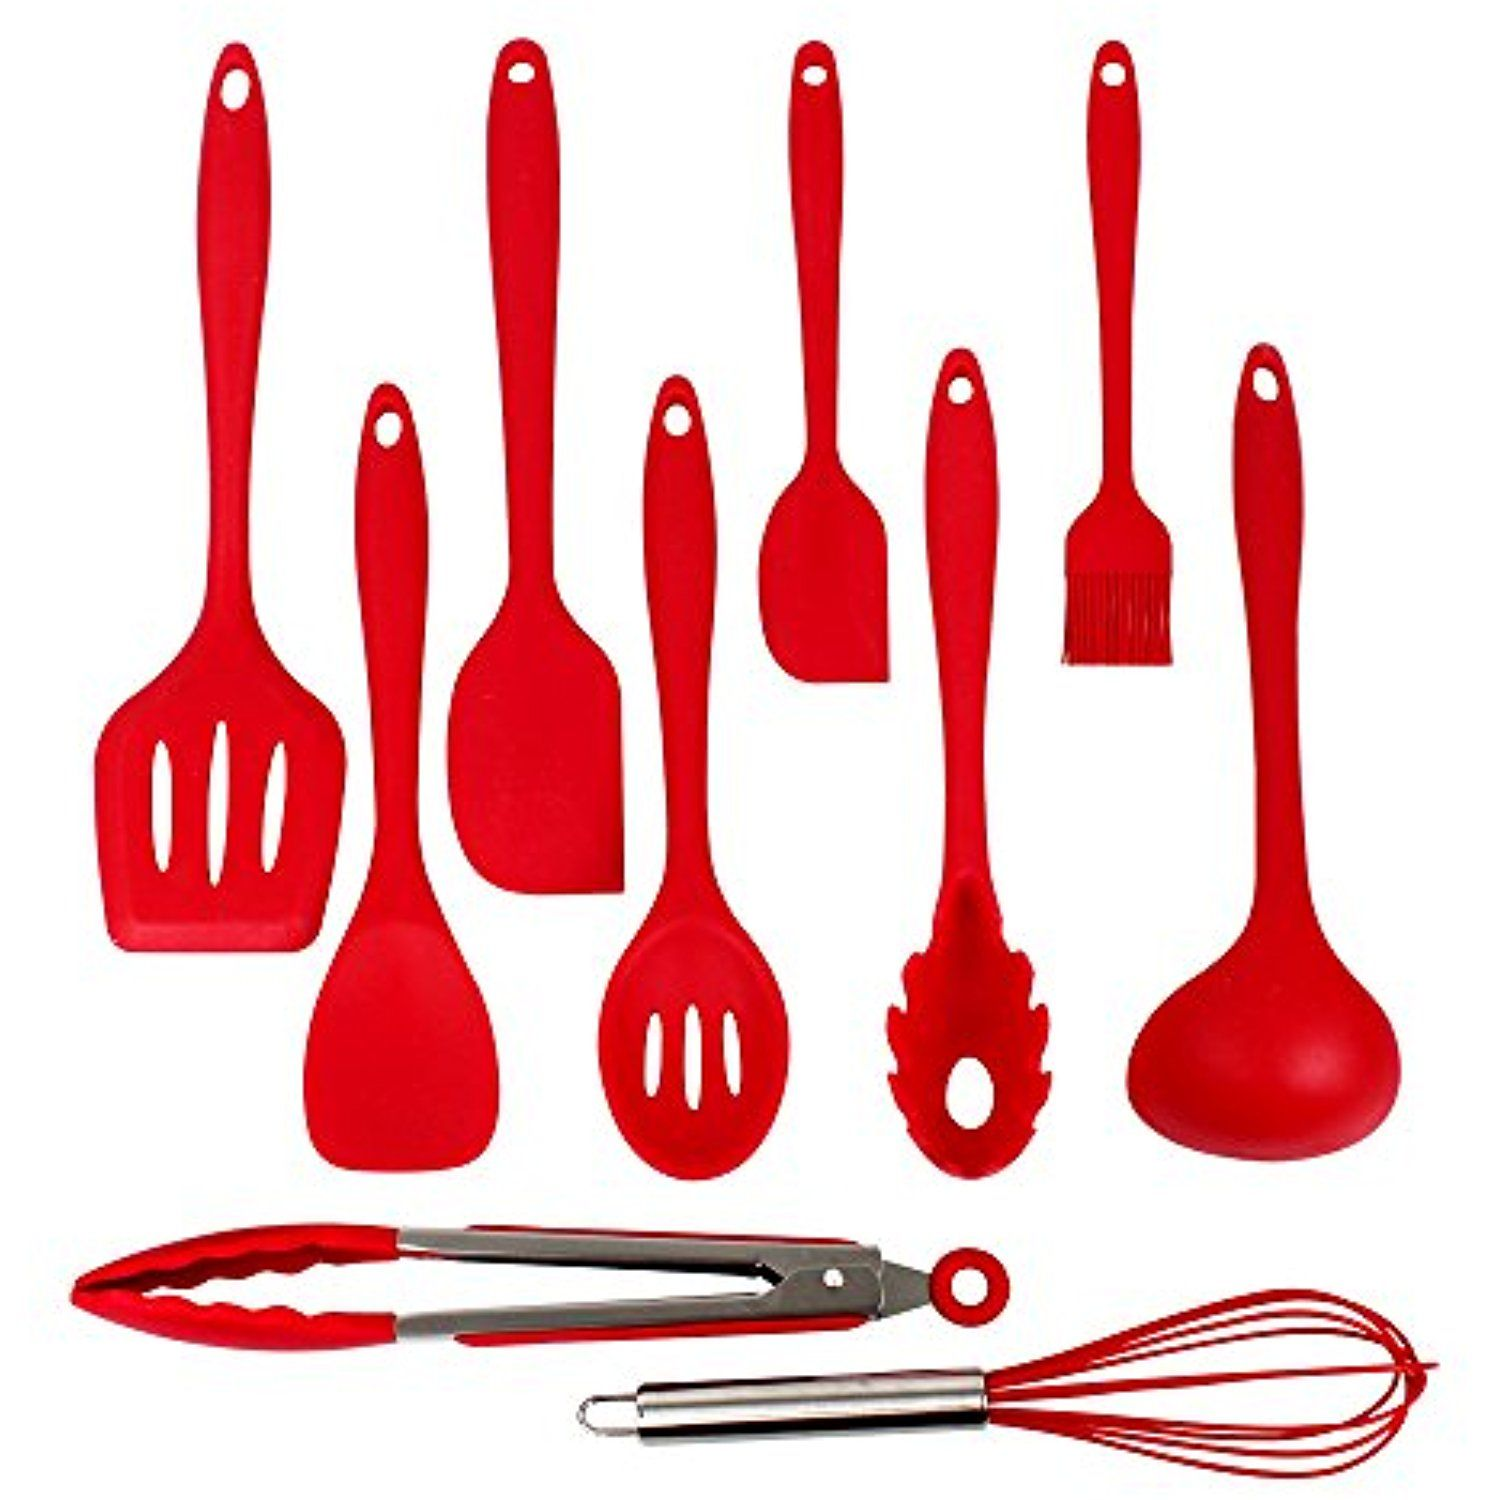 Image result for Silicone Kitchen Utensils - spatula tong